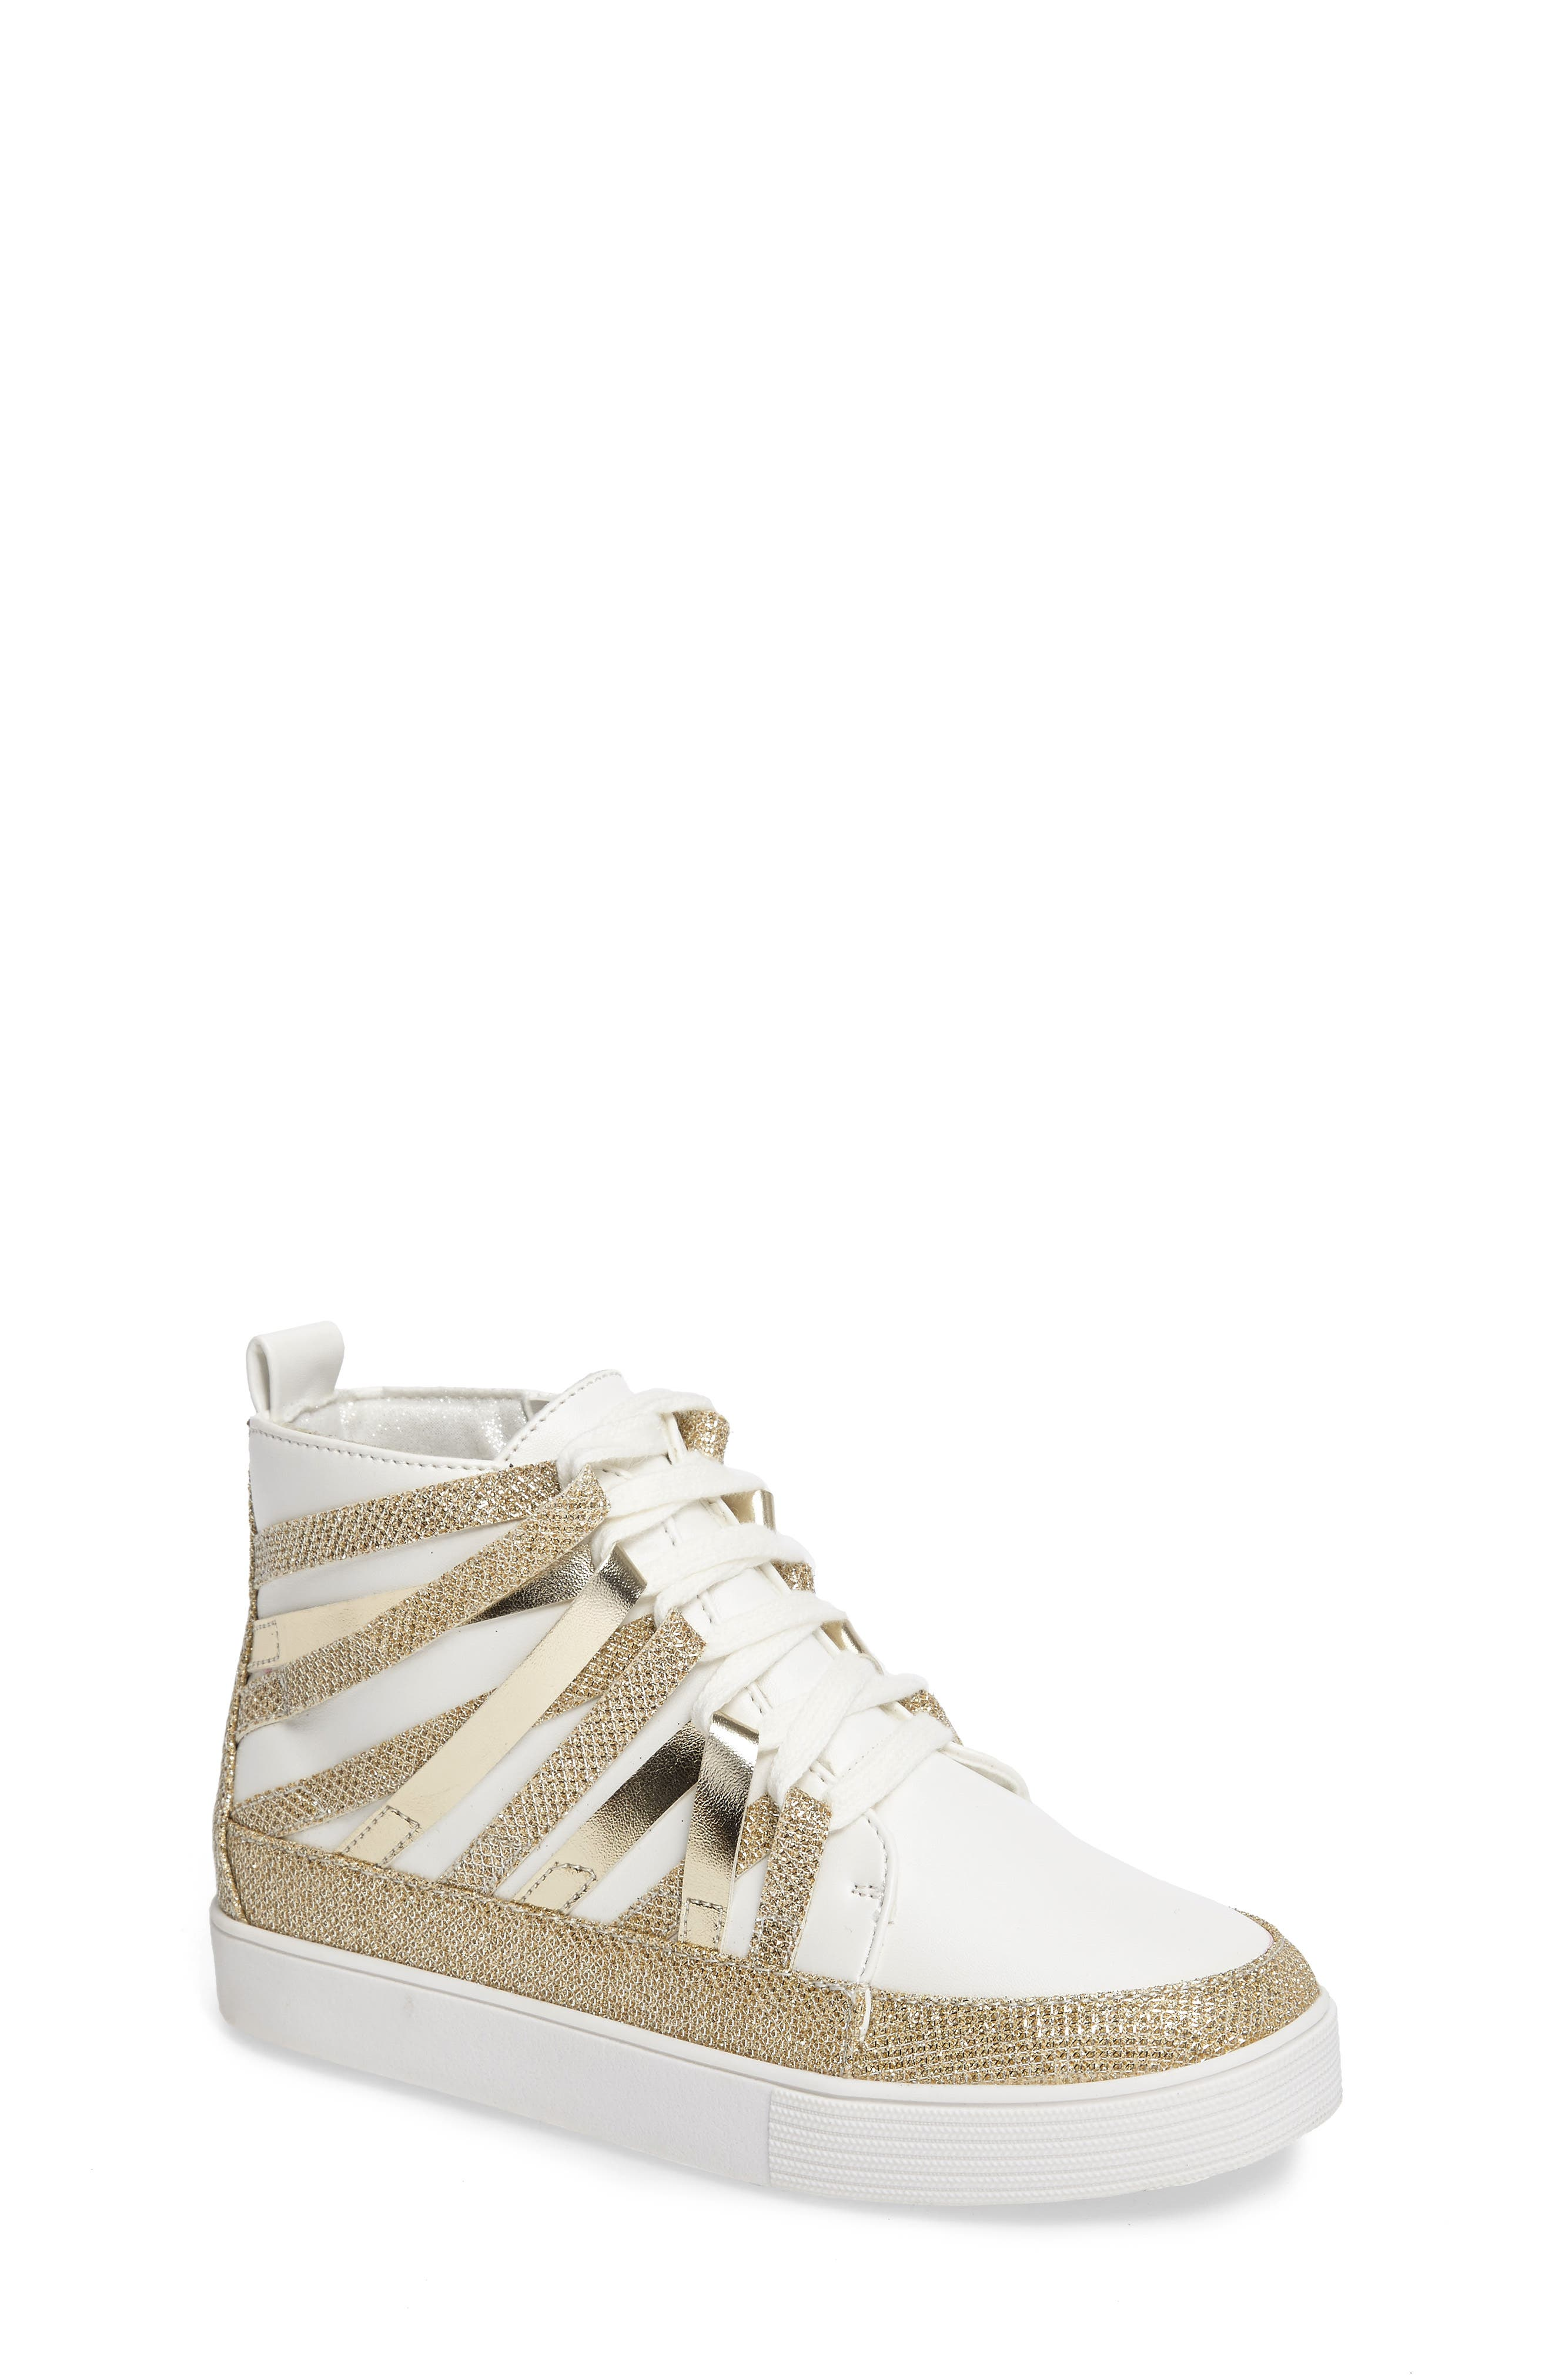 Vance Strappy High Top Sneaker,                         Main,                         color, 711